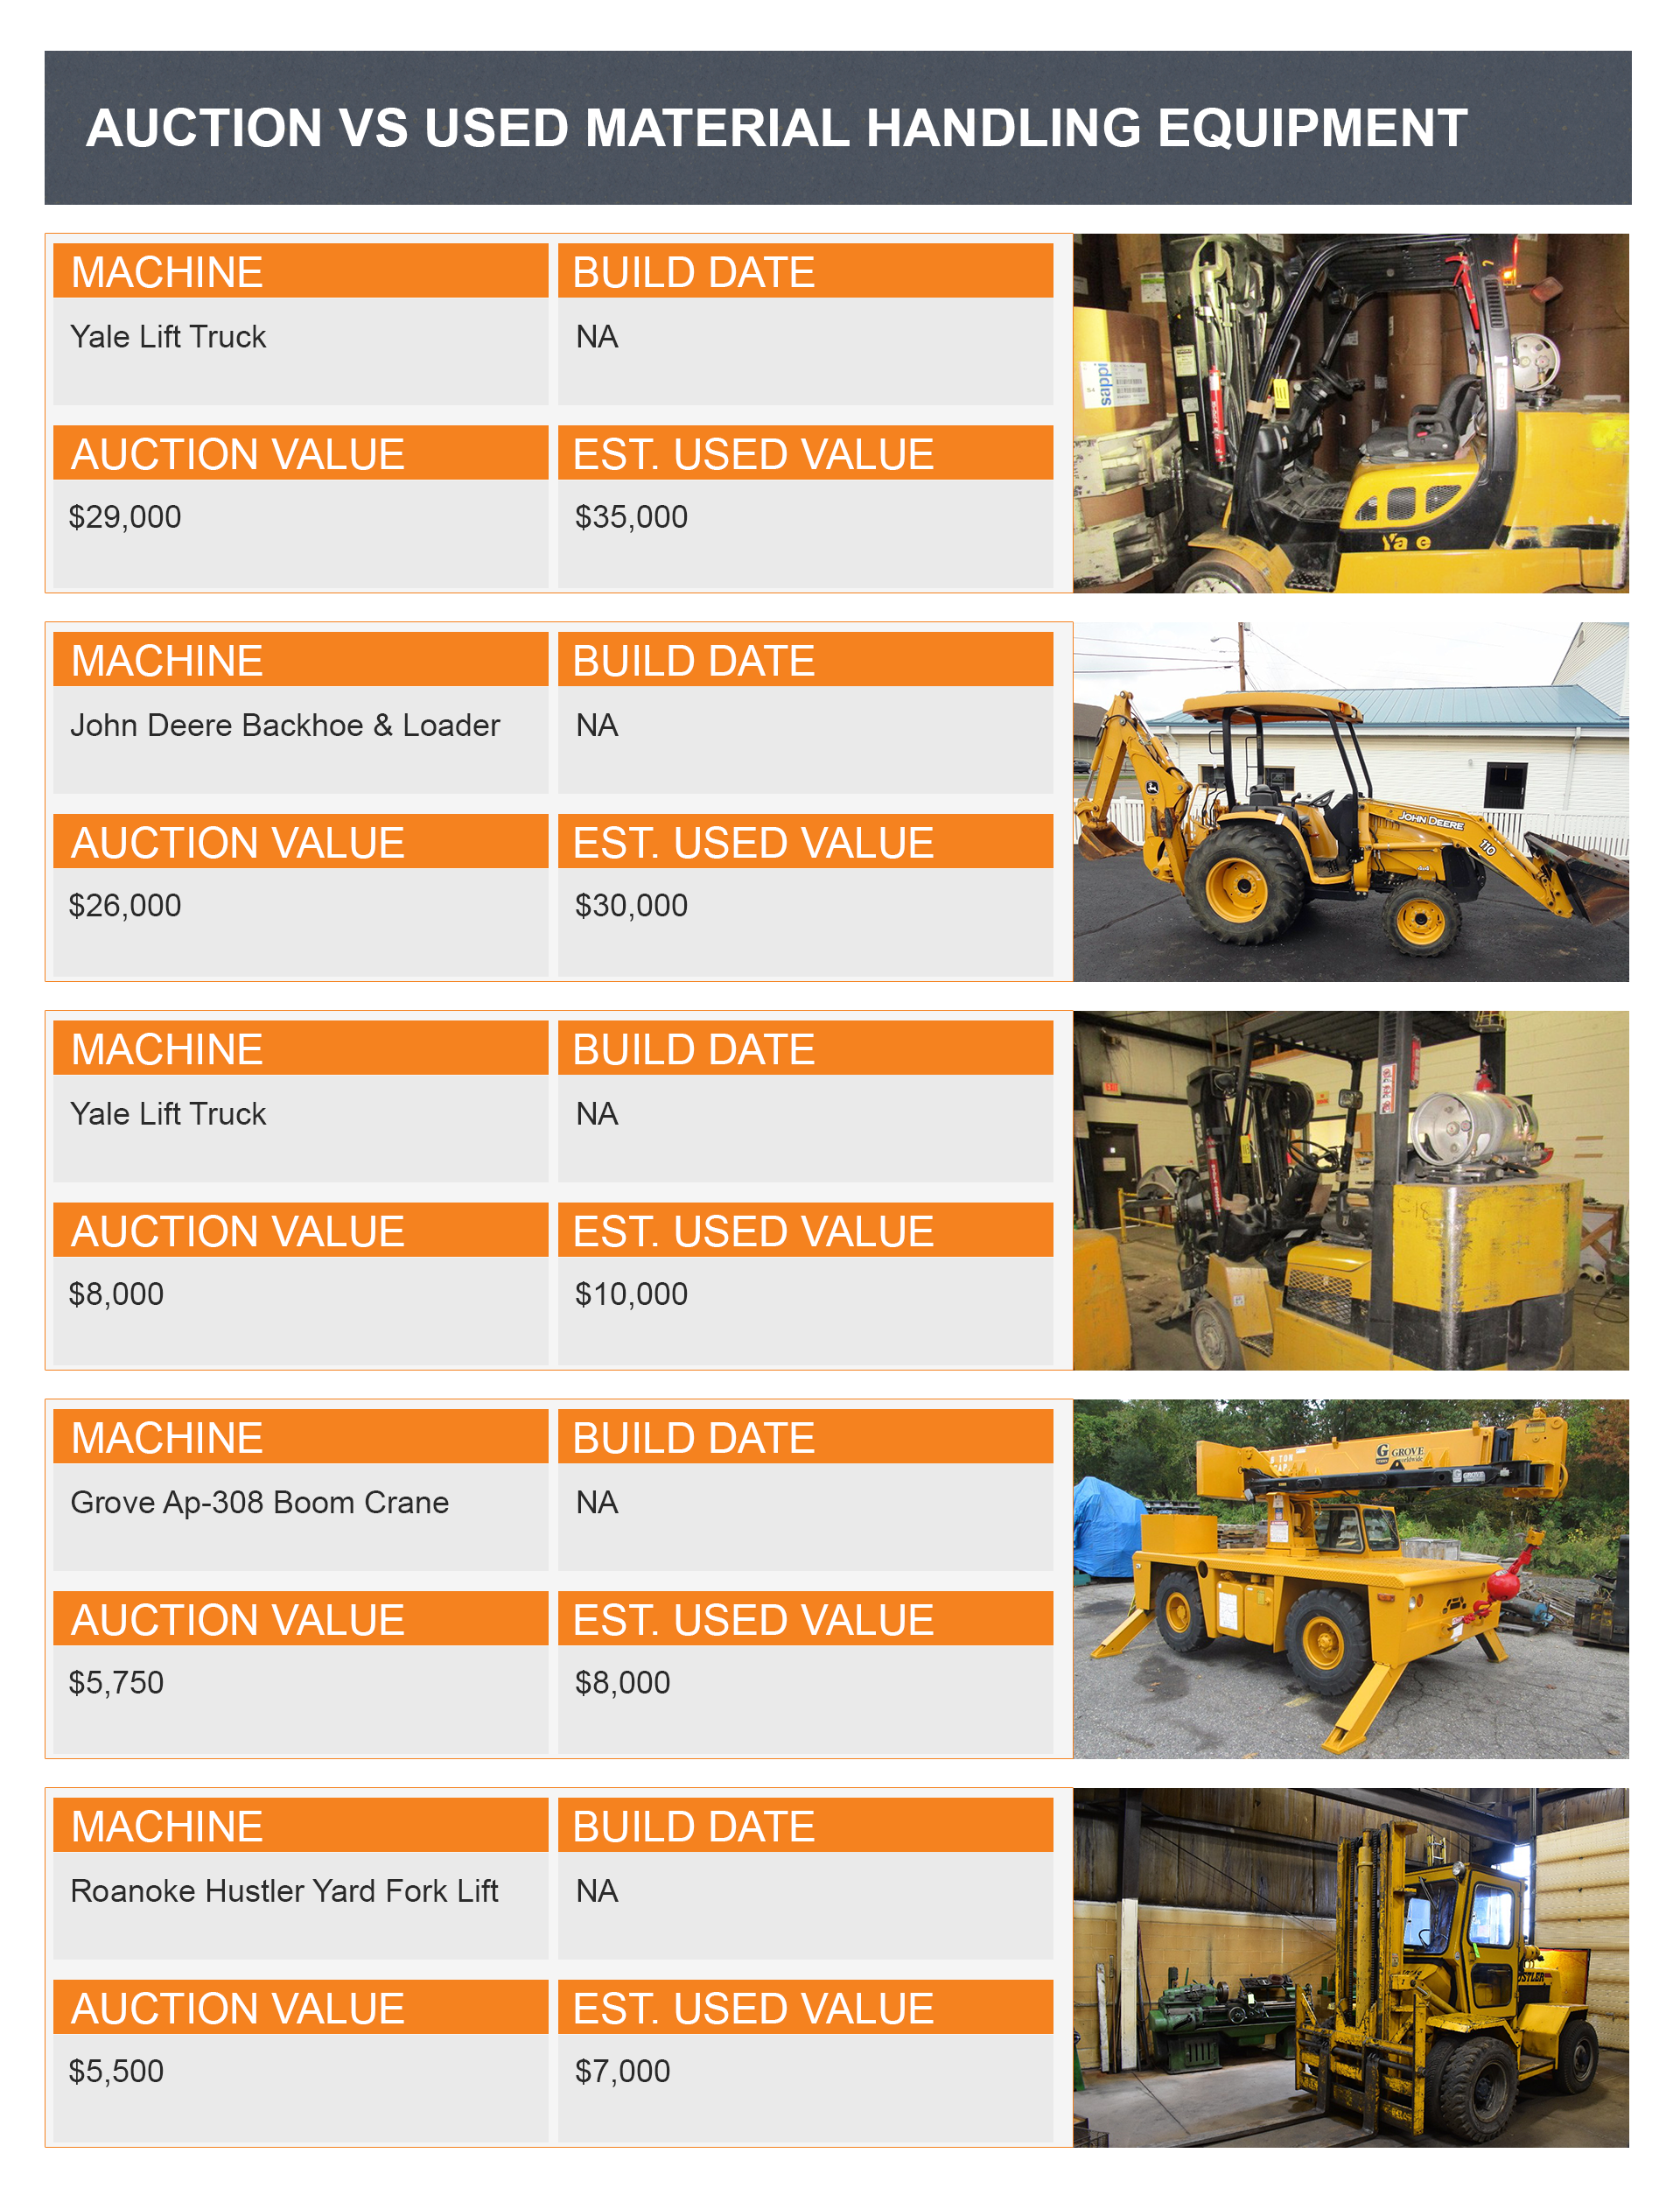 used material handling equipment infographic